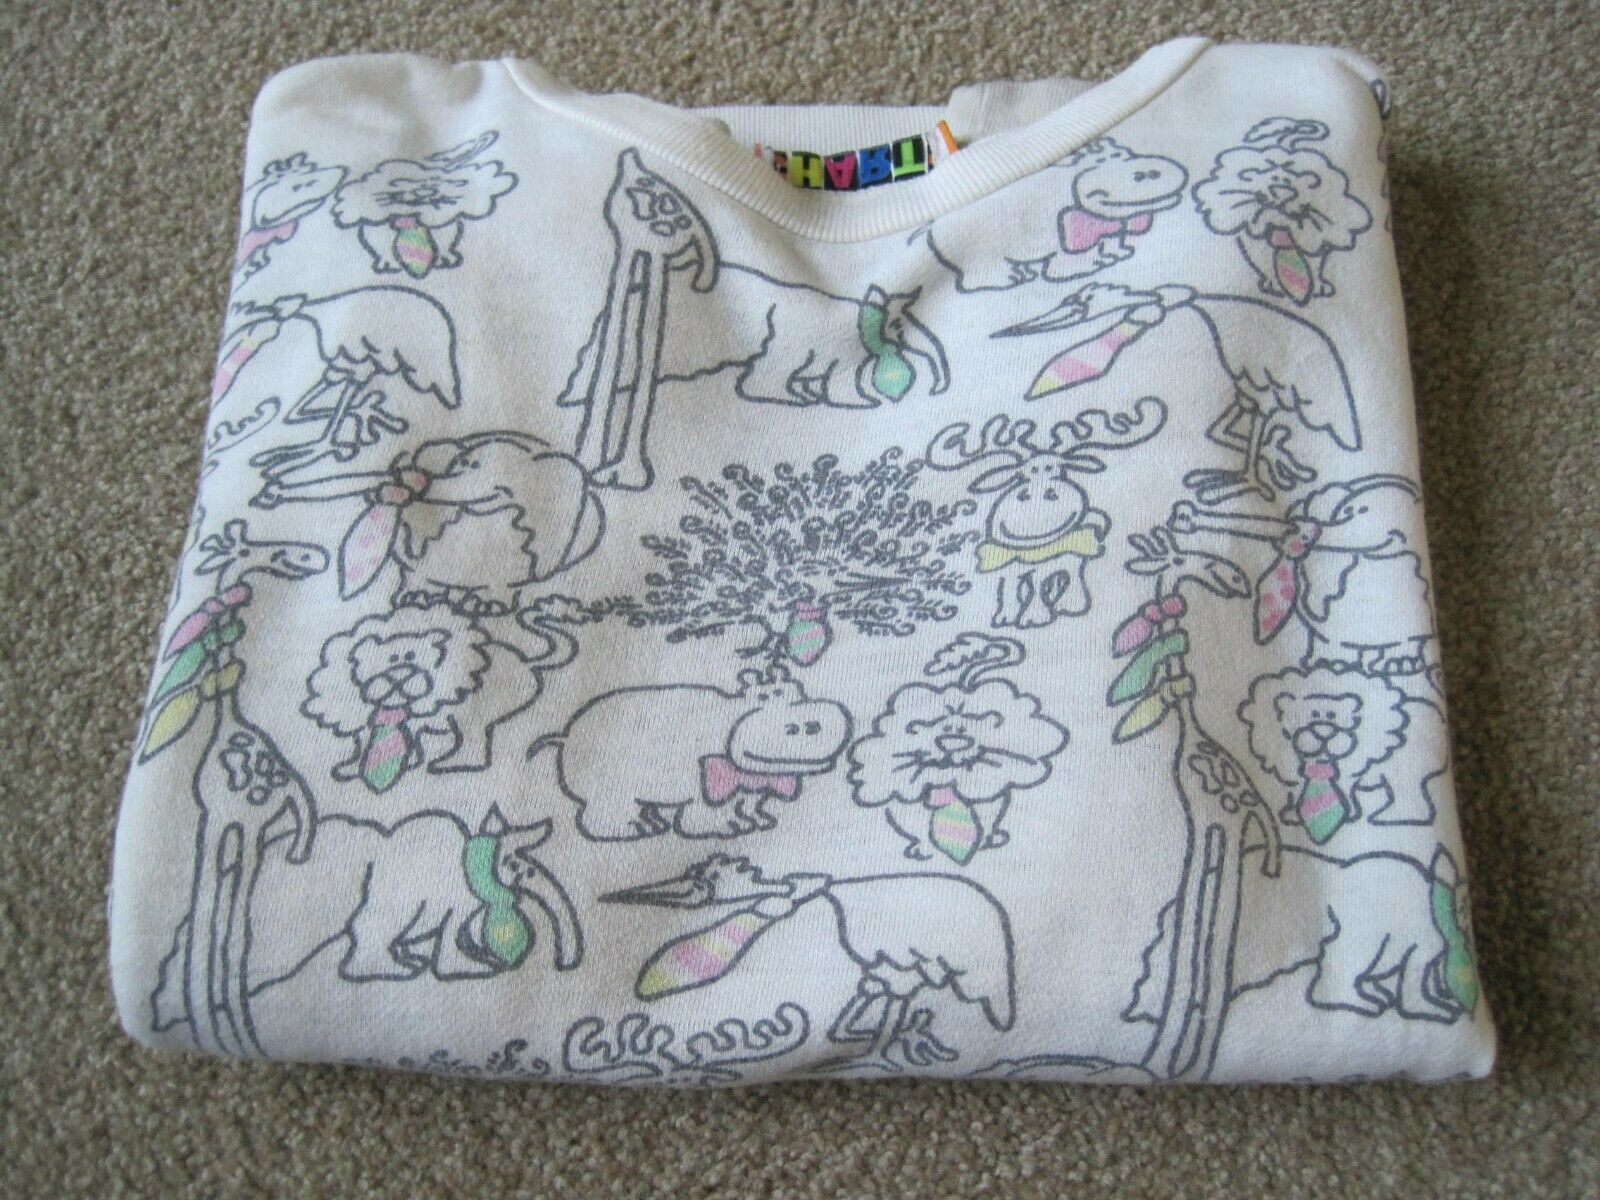 Vintage 1980's (?) Sweatshirt from Charts M/L in Size No Damage Animals W Ties